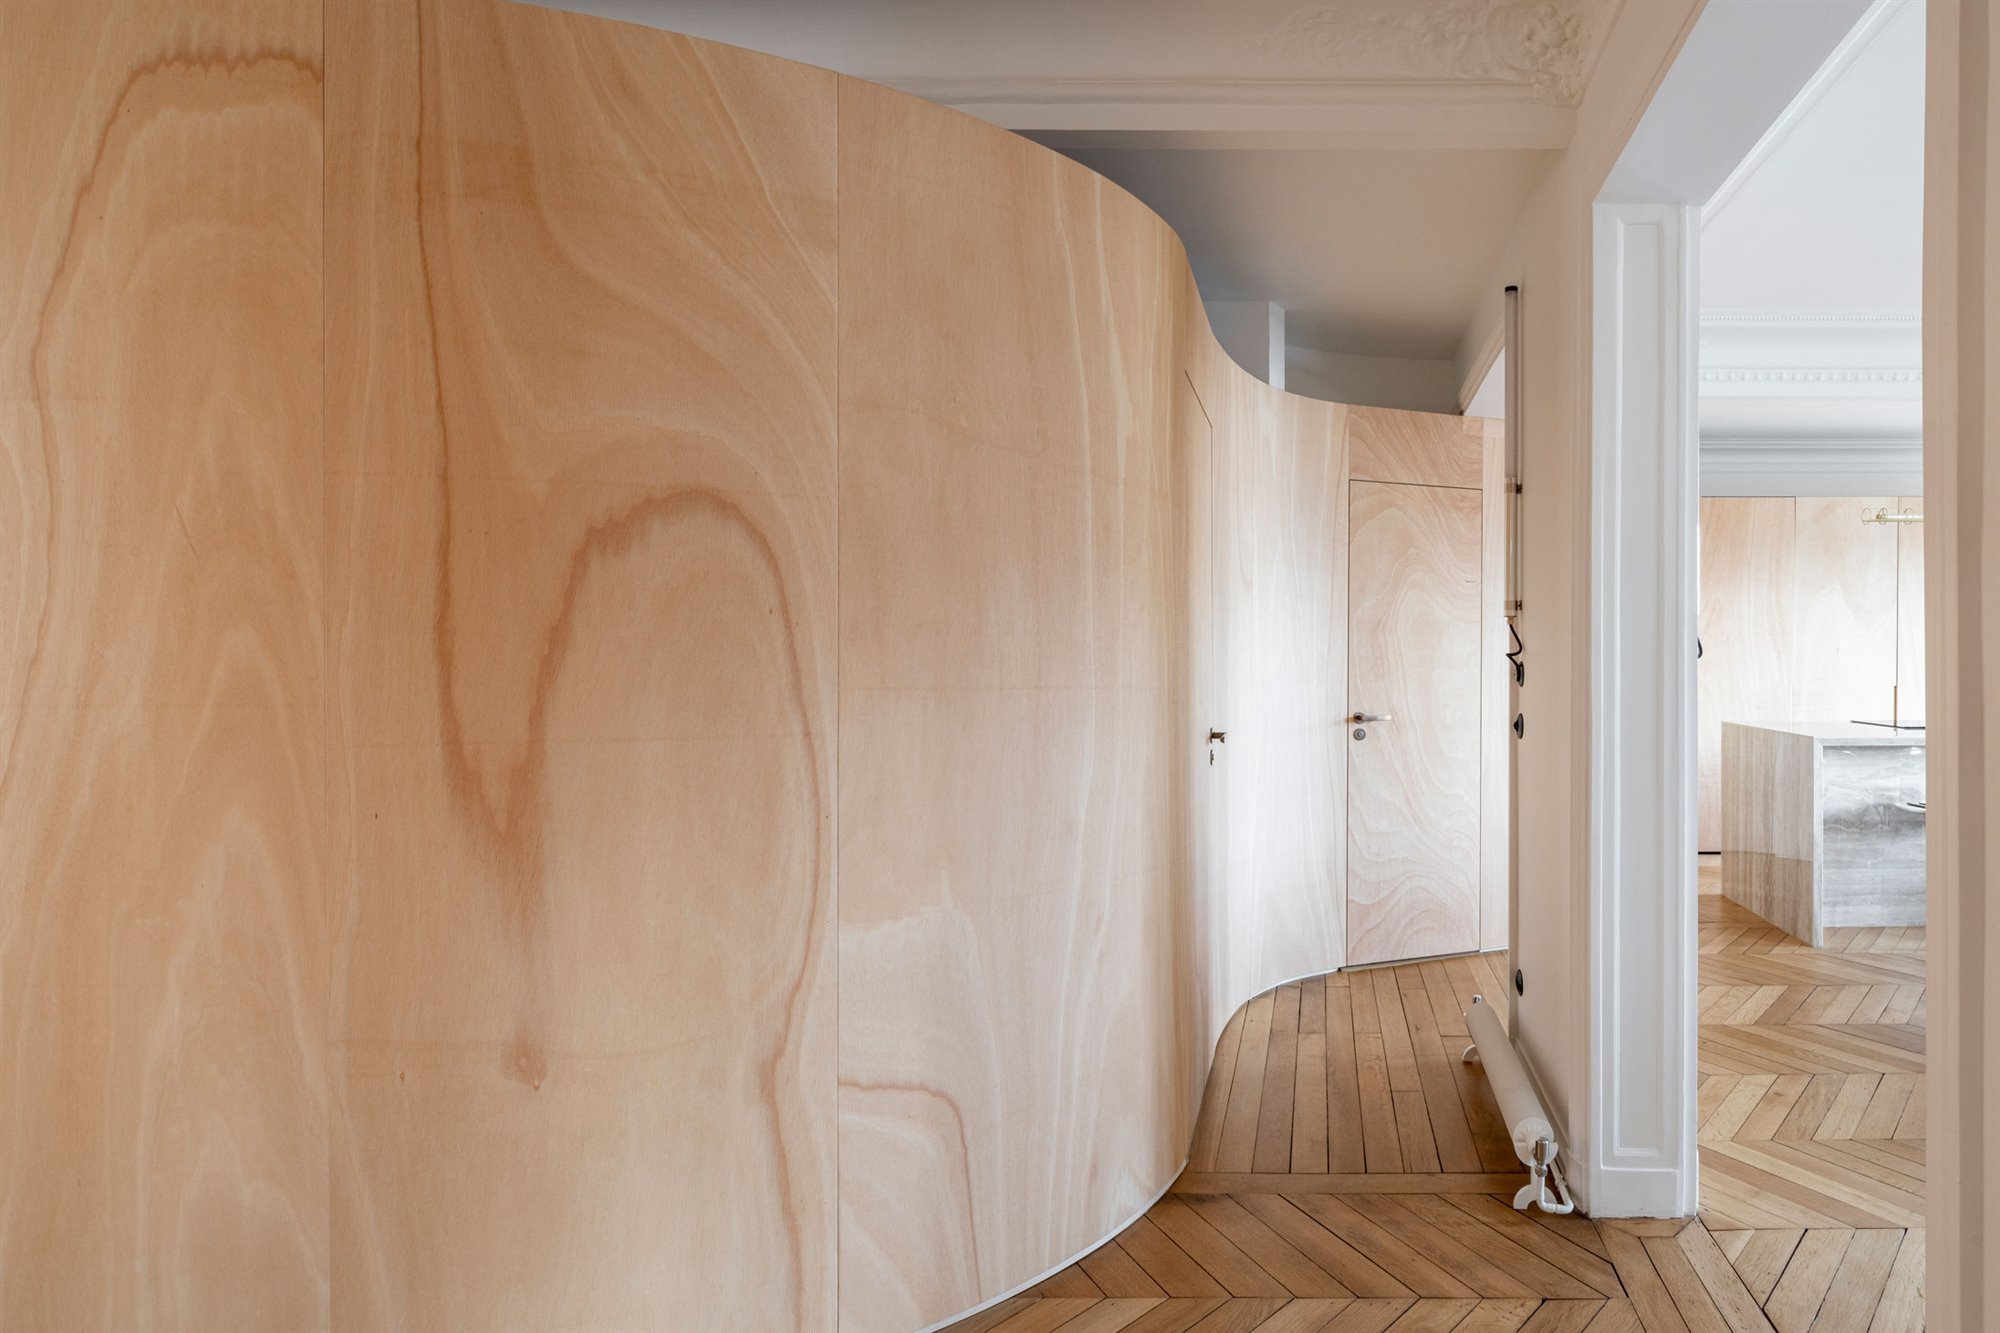 toledano-architects-wooden-ribbon-HD-19